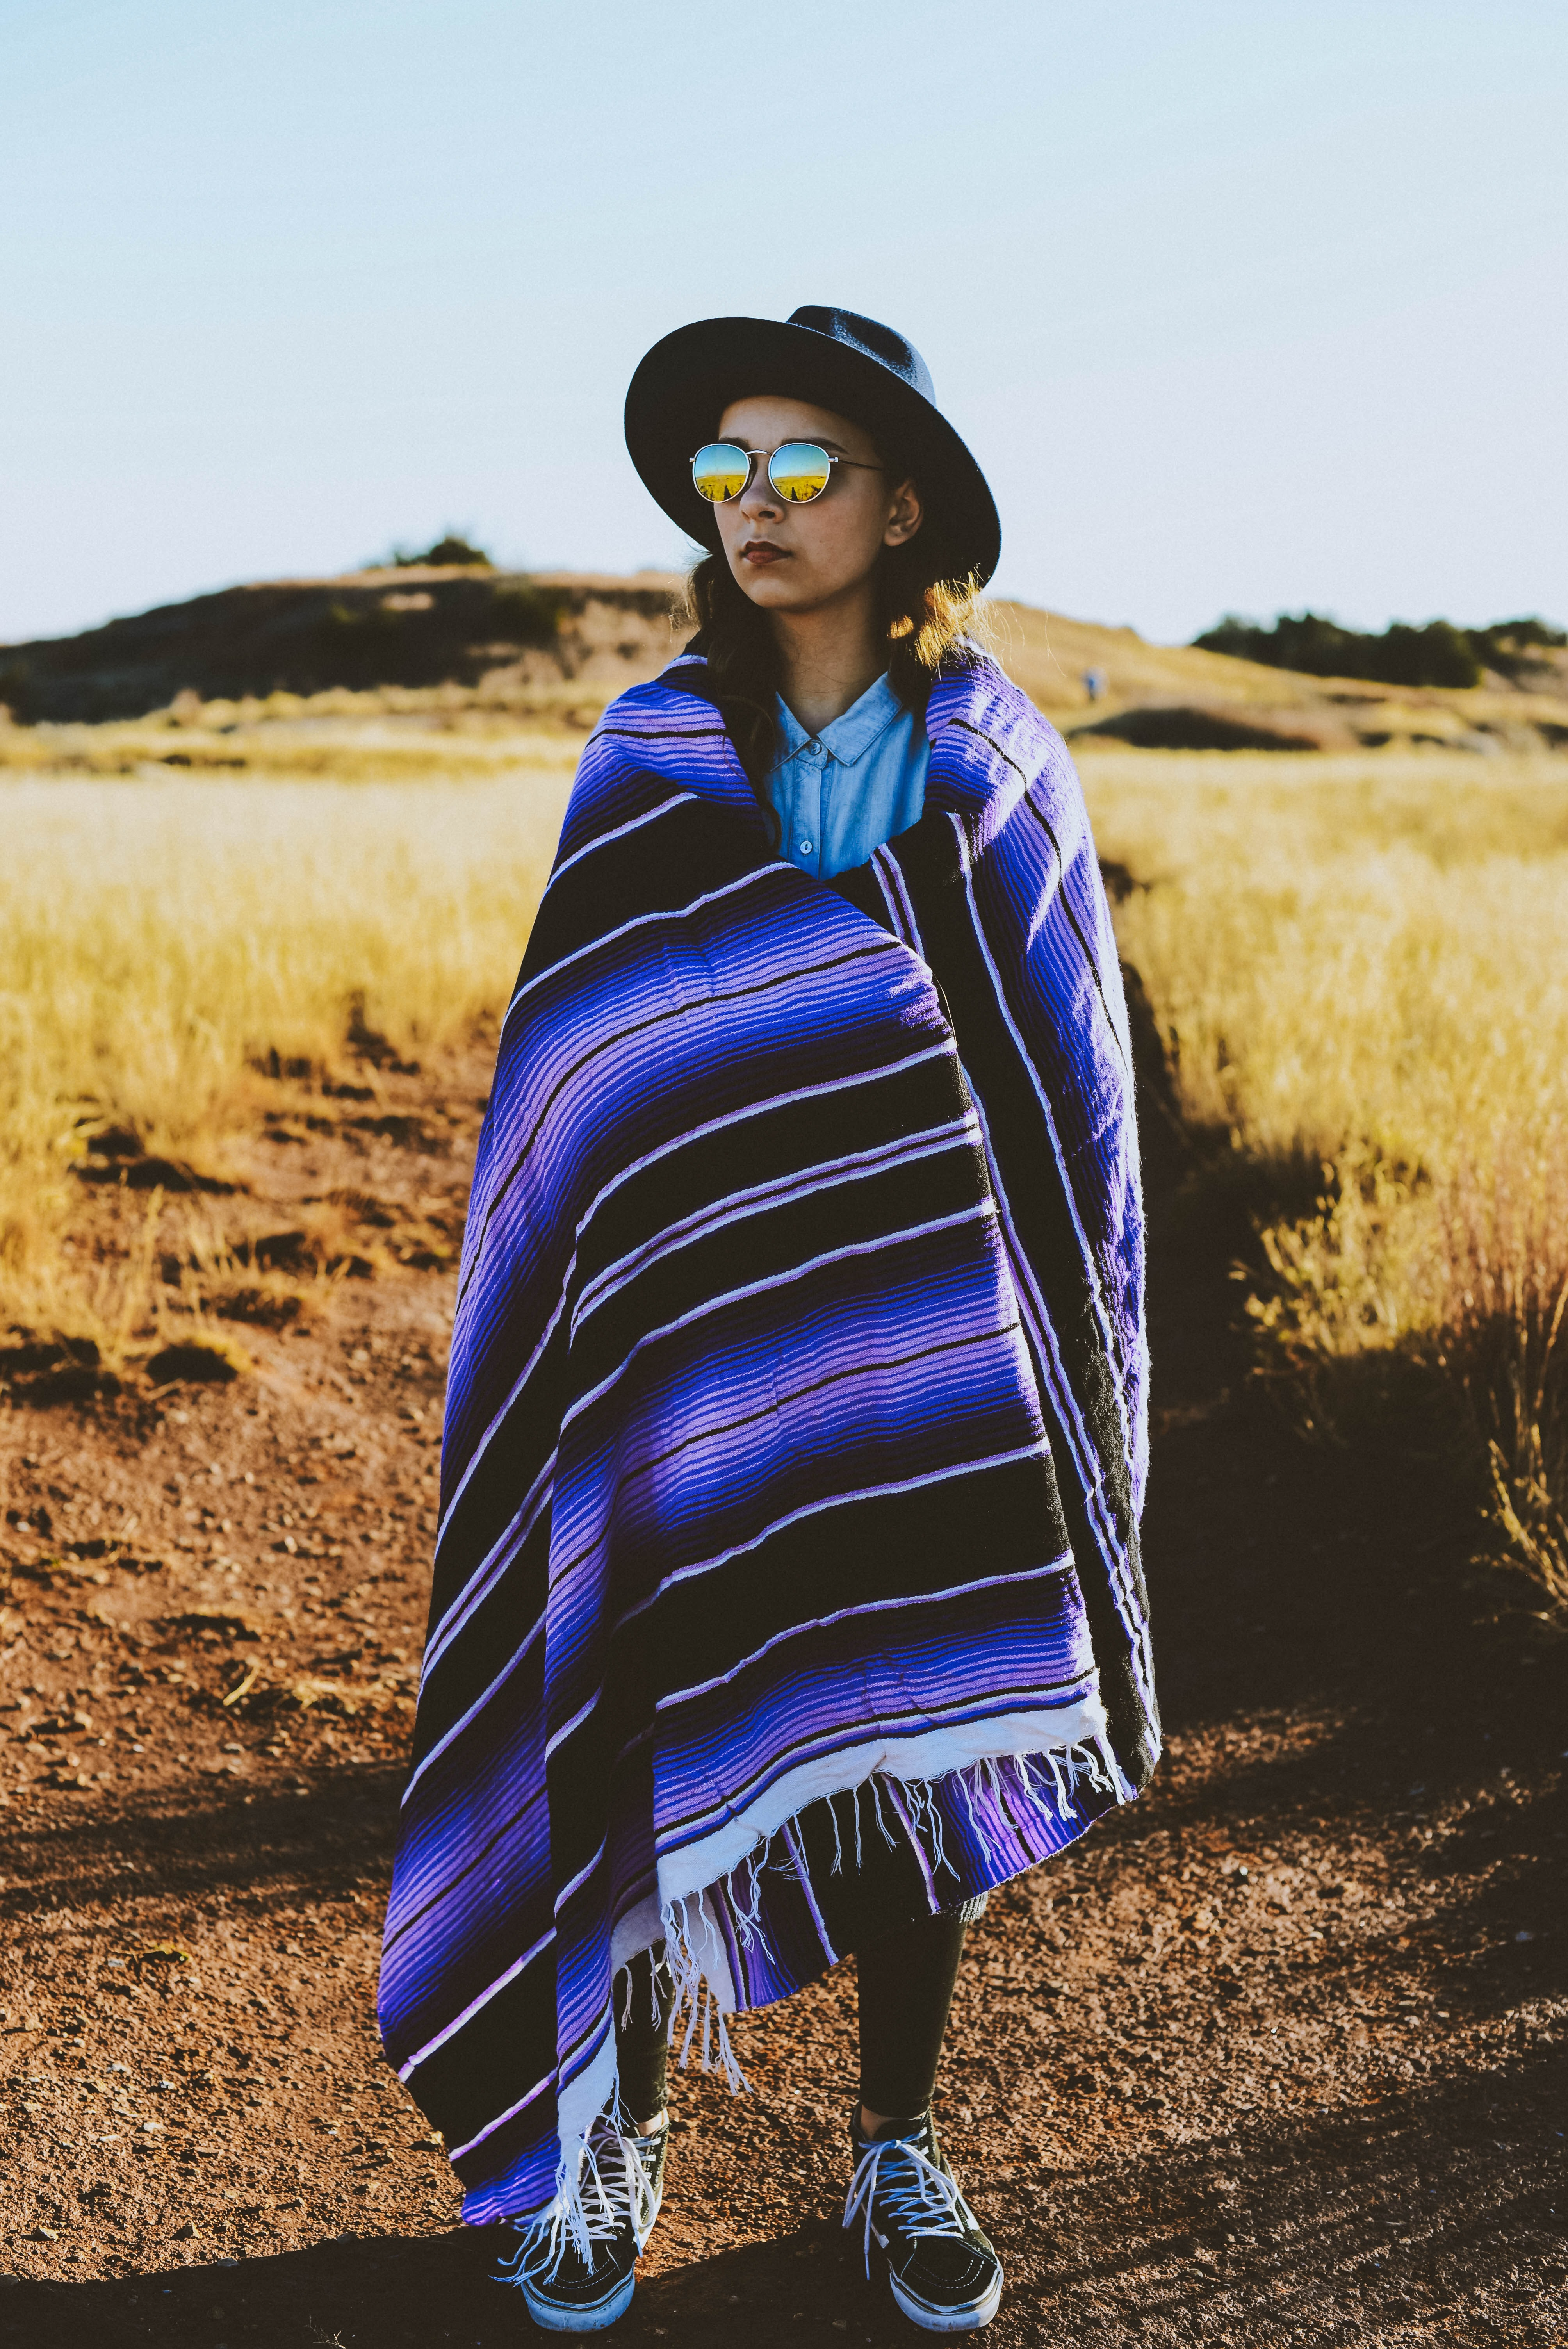 A woman in sunglasses and a hat stands on a desert path wrapped in a blanket